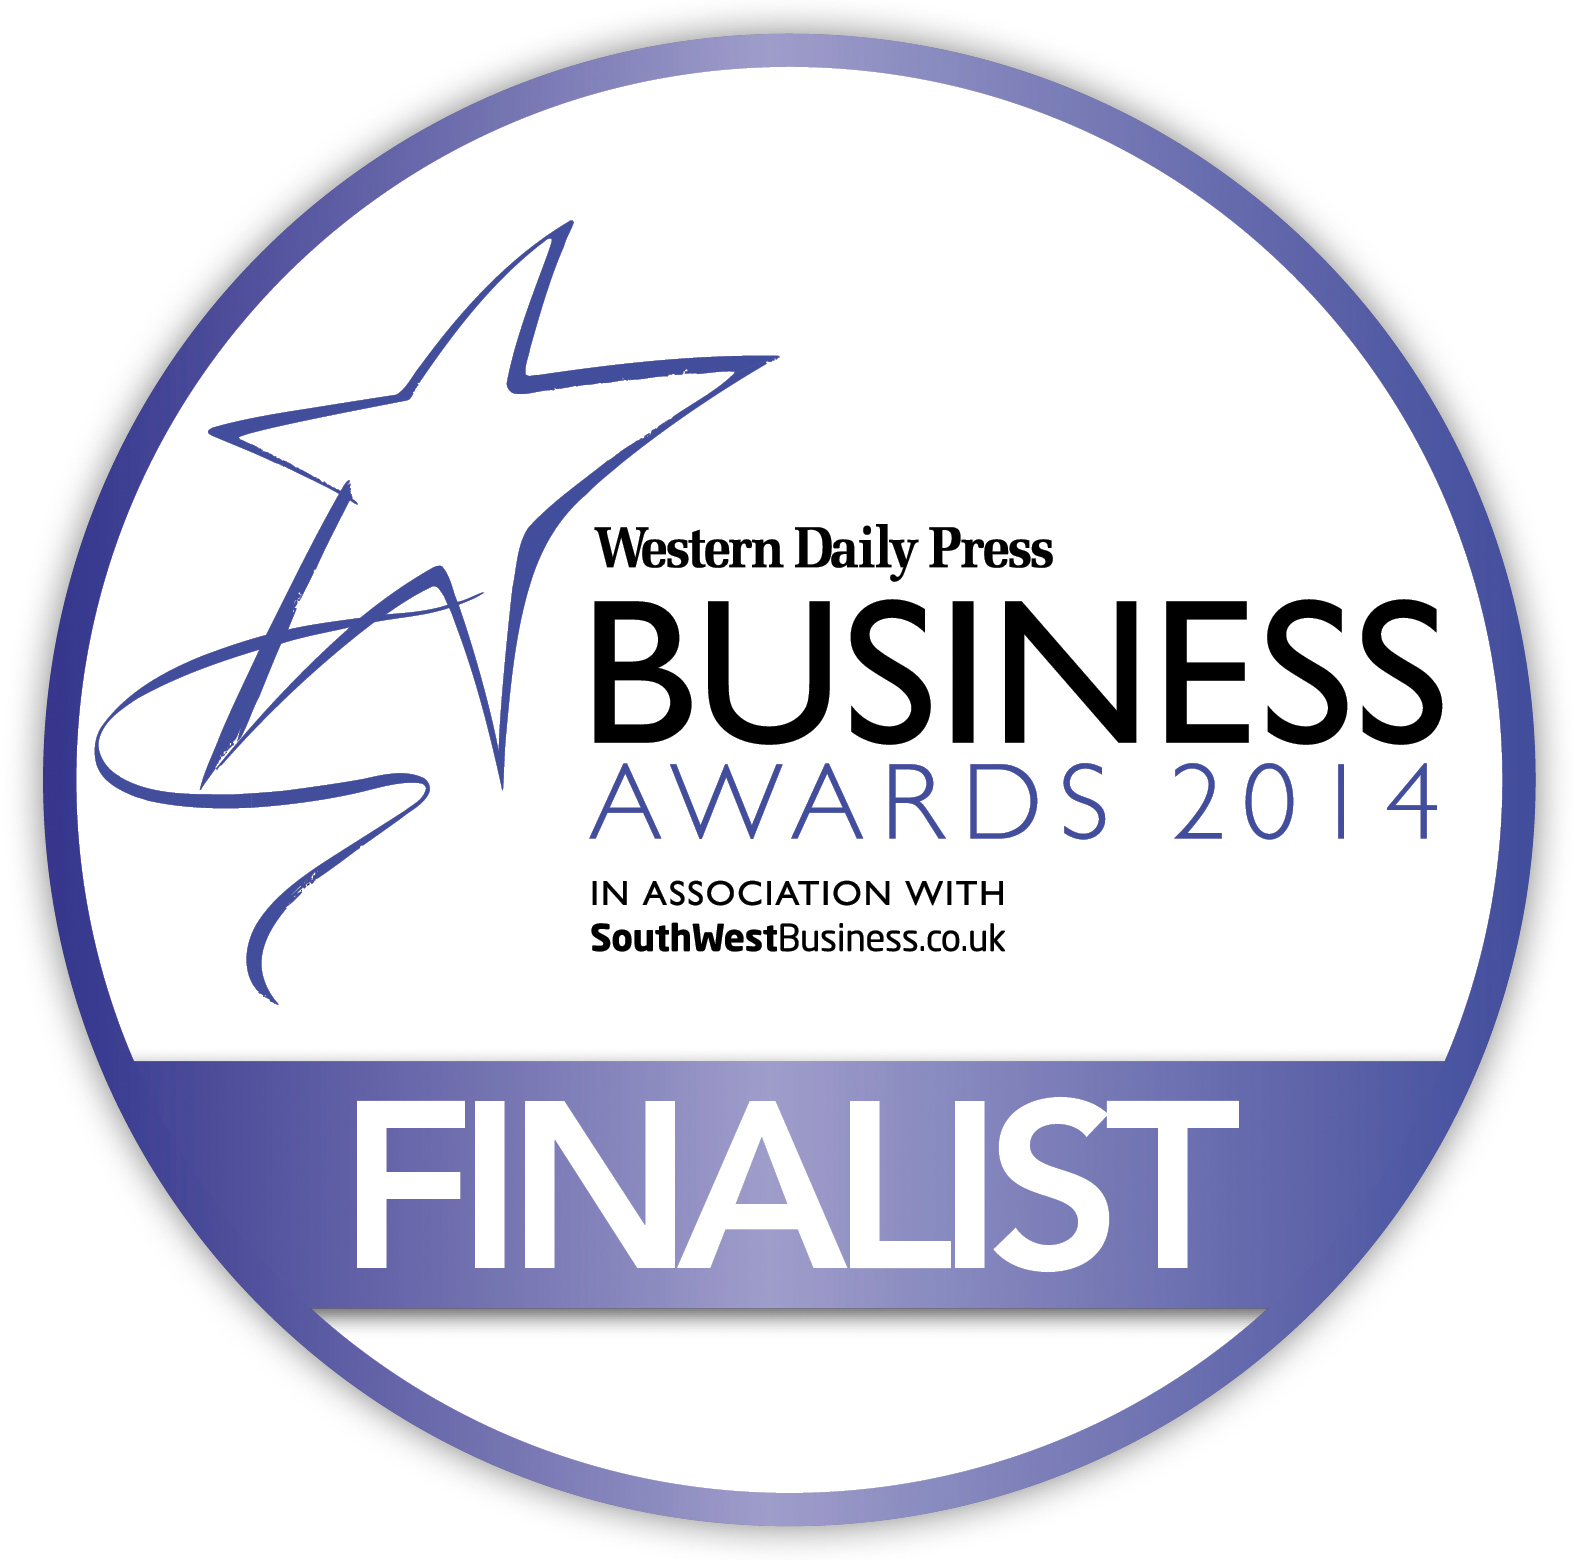 Business awards 2014